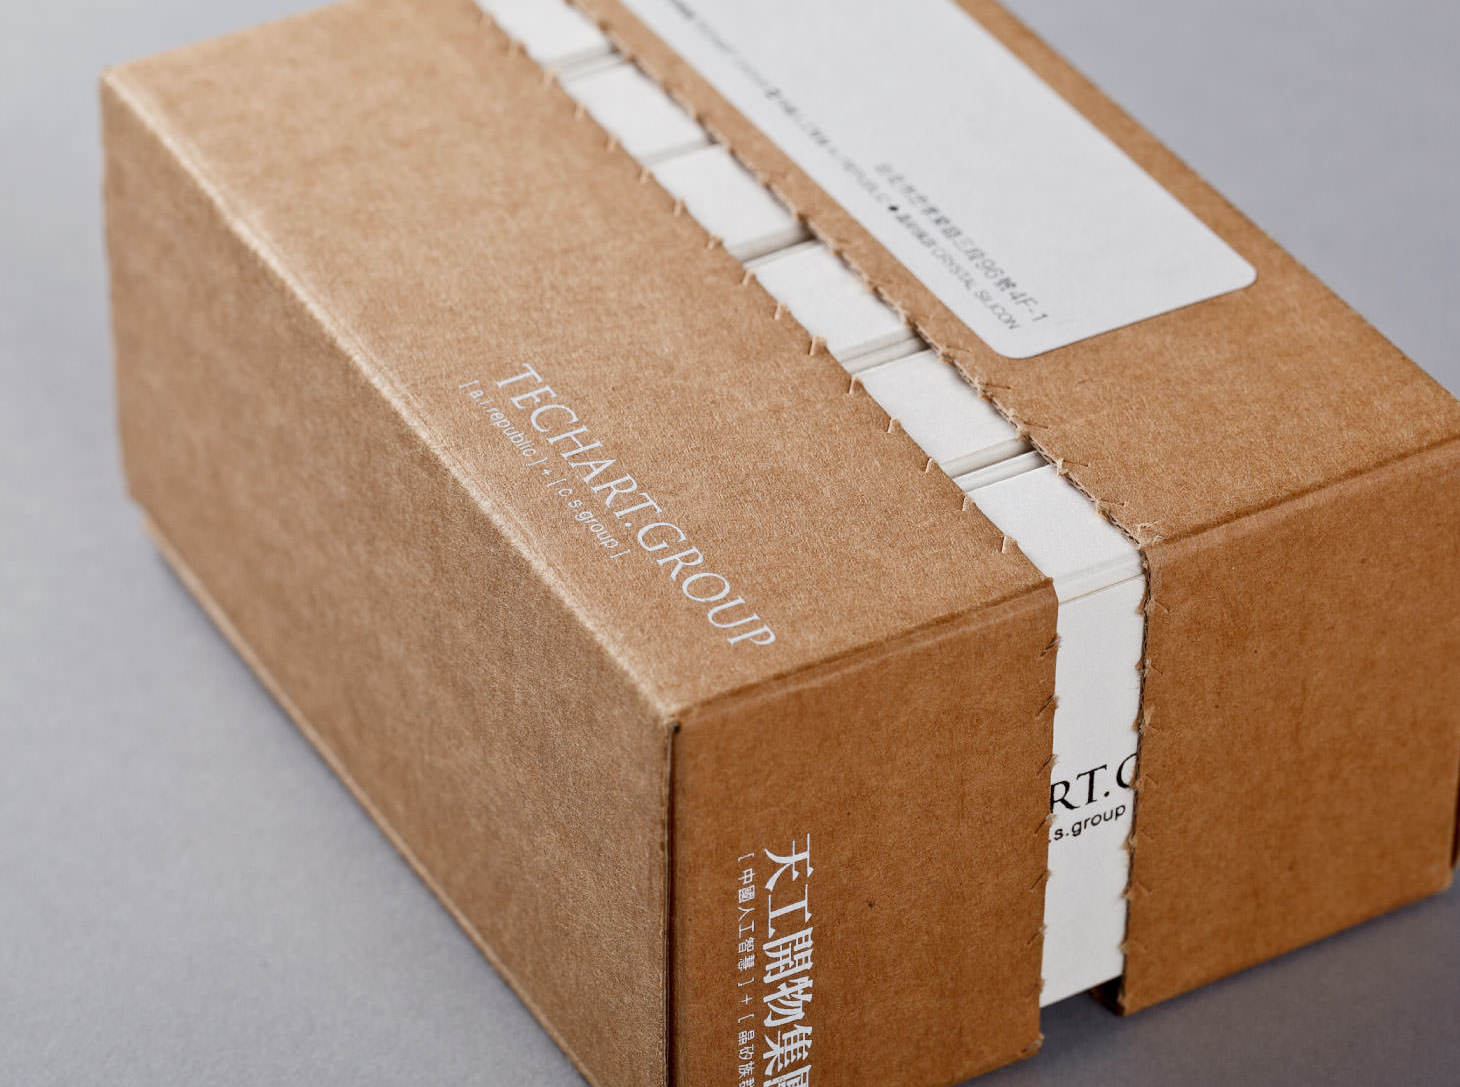 TCA_packaging_20150226_2-3.jpg